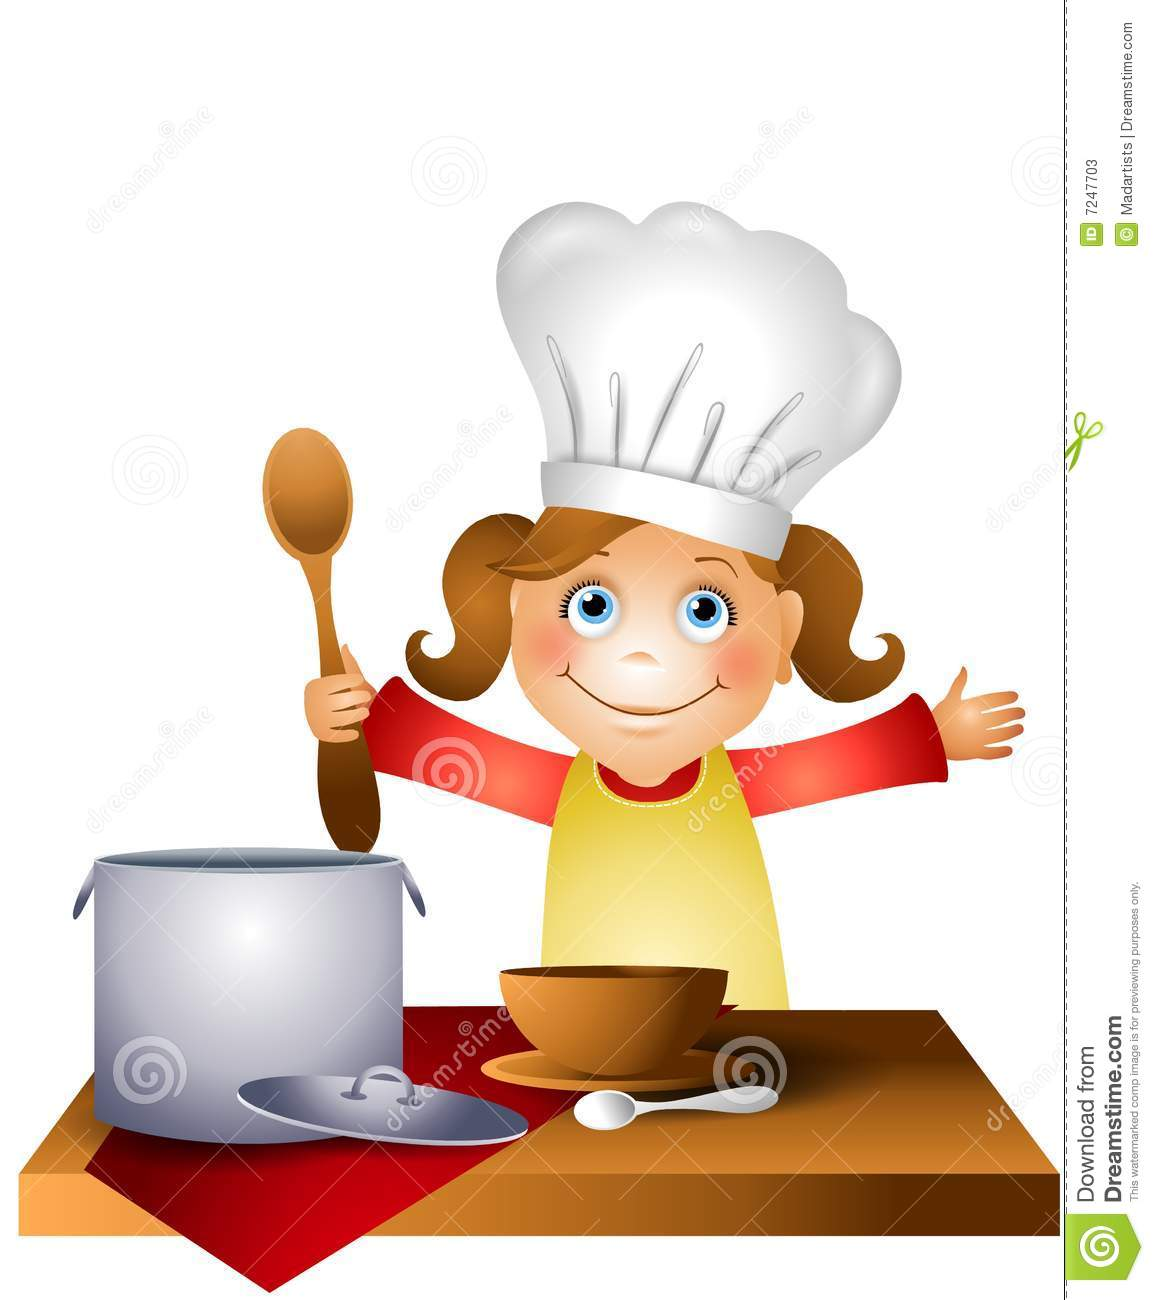 Clip Art Illustration Featuring A Little Girl Wearing A Chef Hat